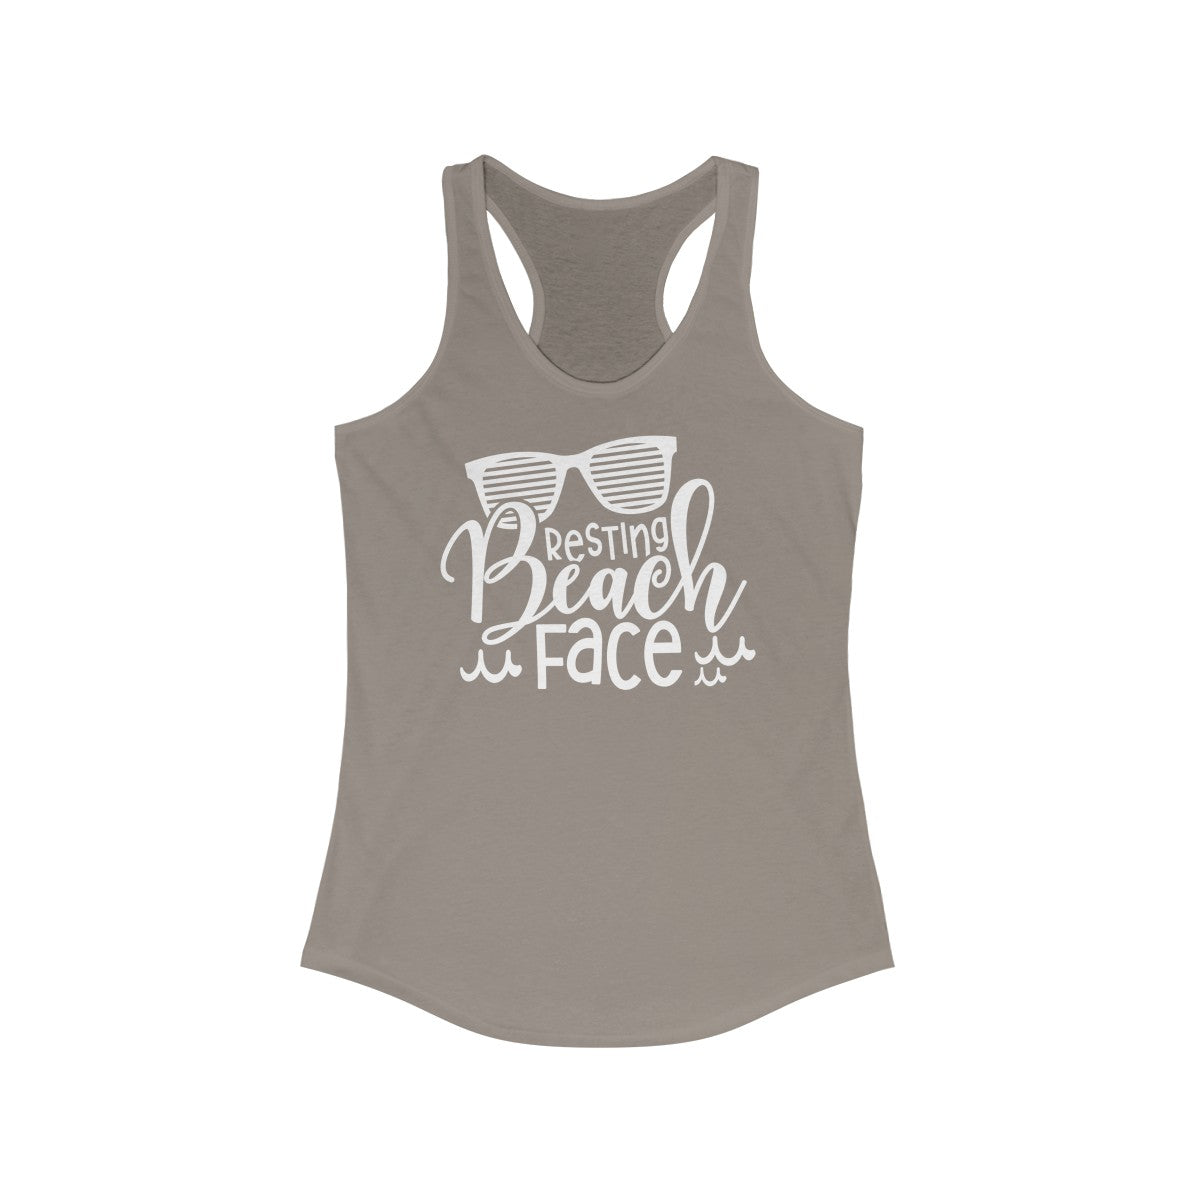 Resting Beach Face Women's Ideal Racerback Tank